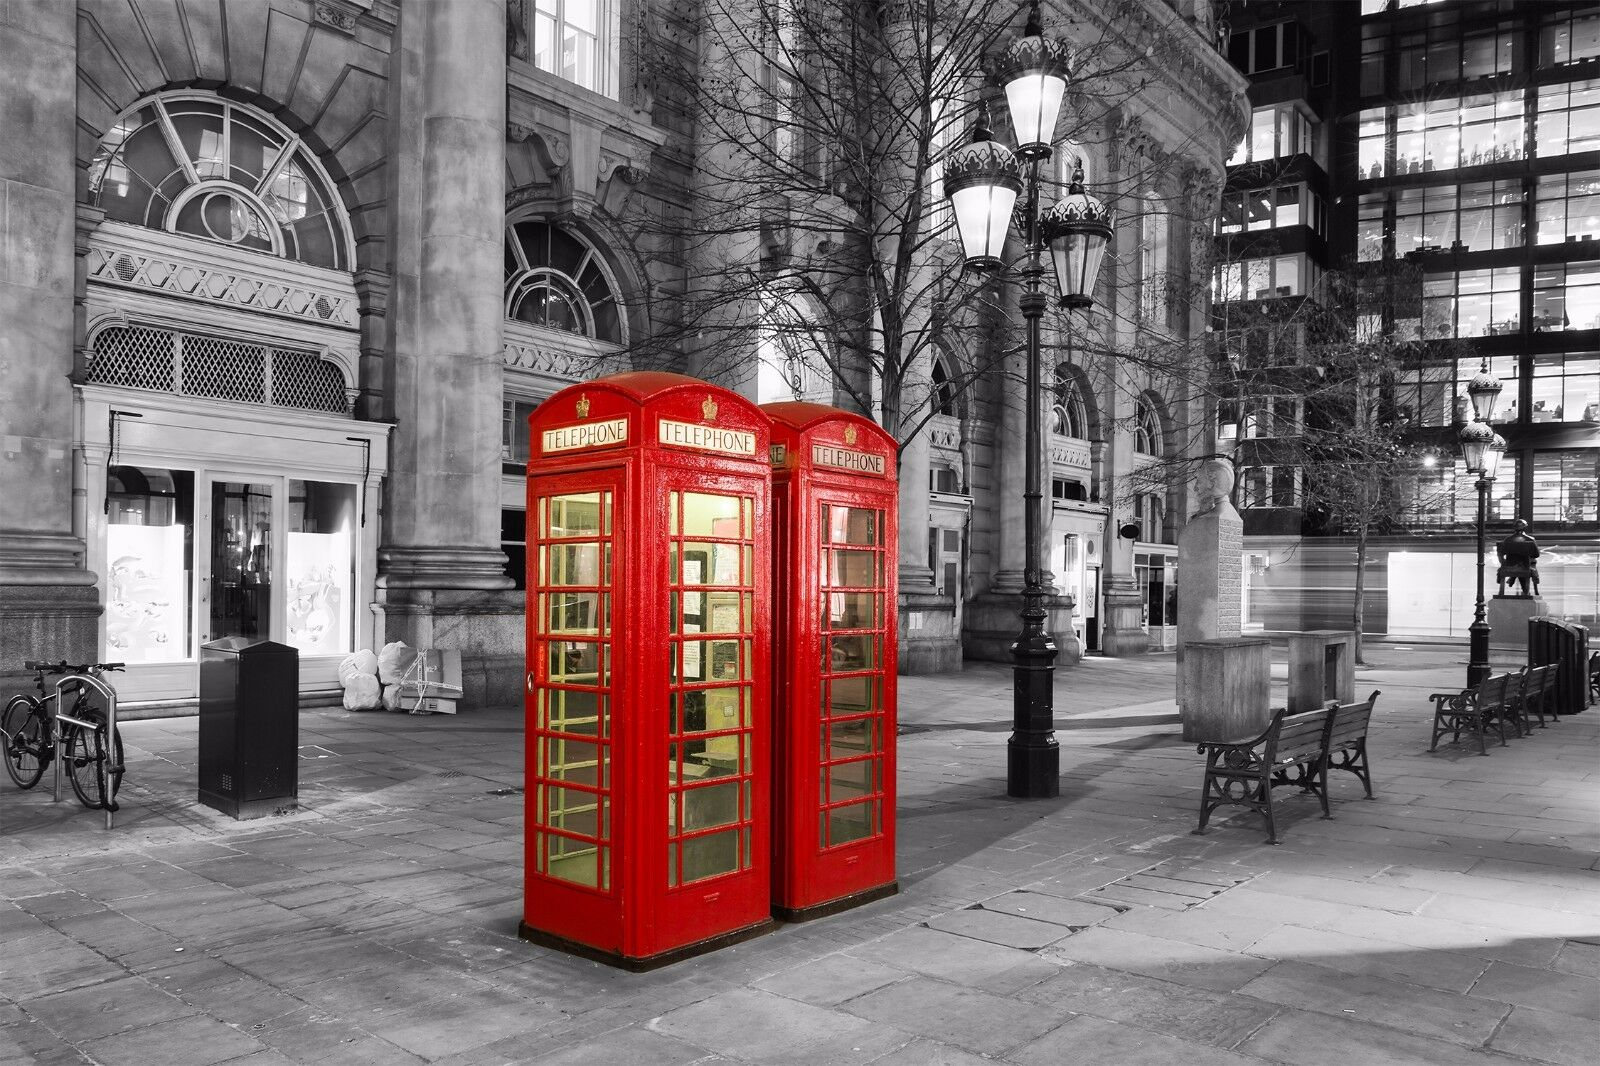 London City Red Telephone Booth Wall Mural Photo Wallpaper Giant Decor 1 Of 6 See More